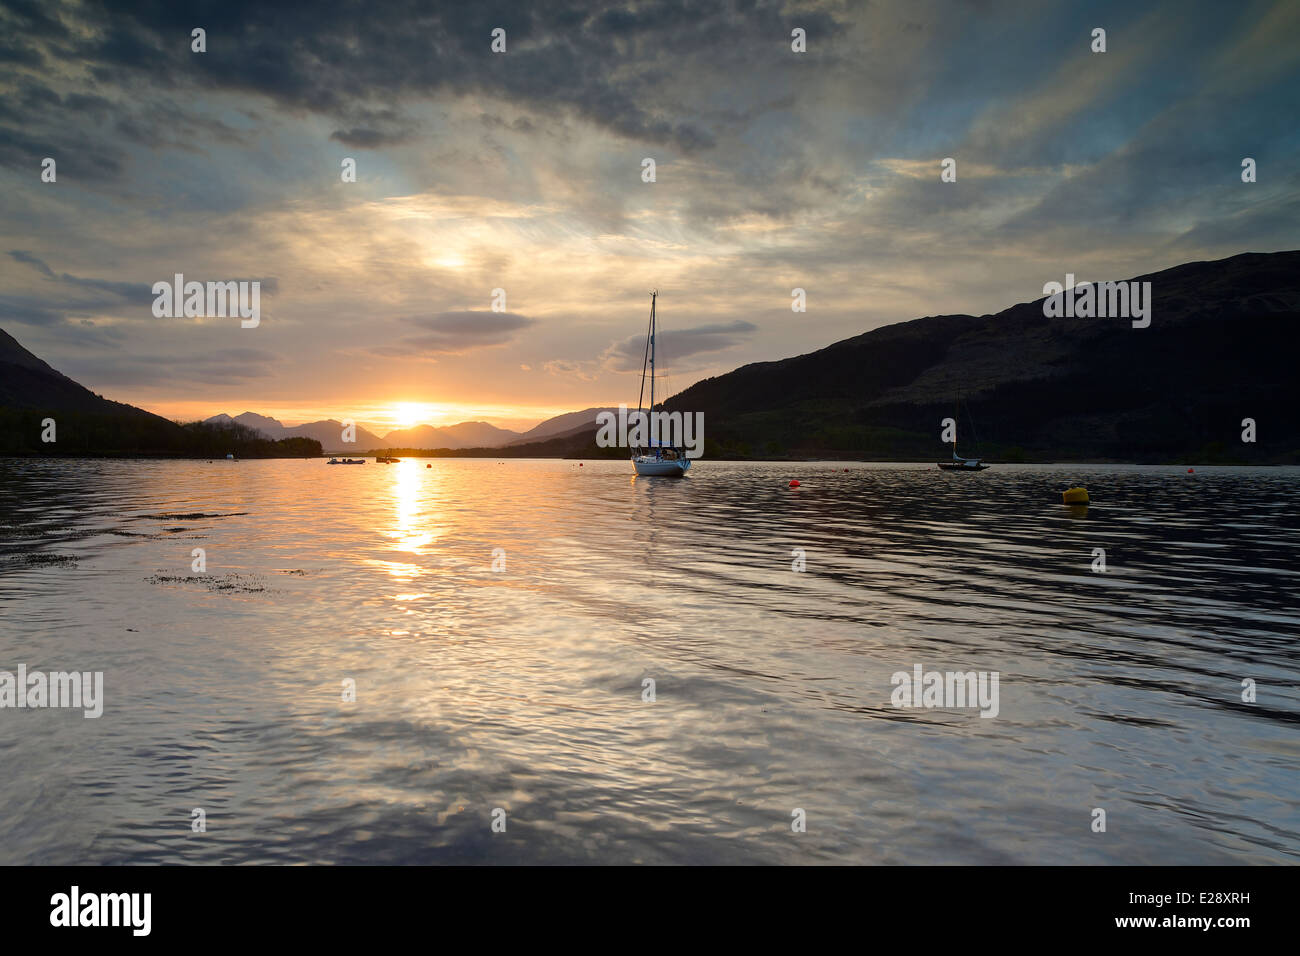 Sunset on loch leven near Ballachulish - Stock Image